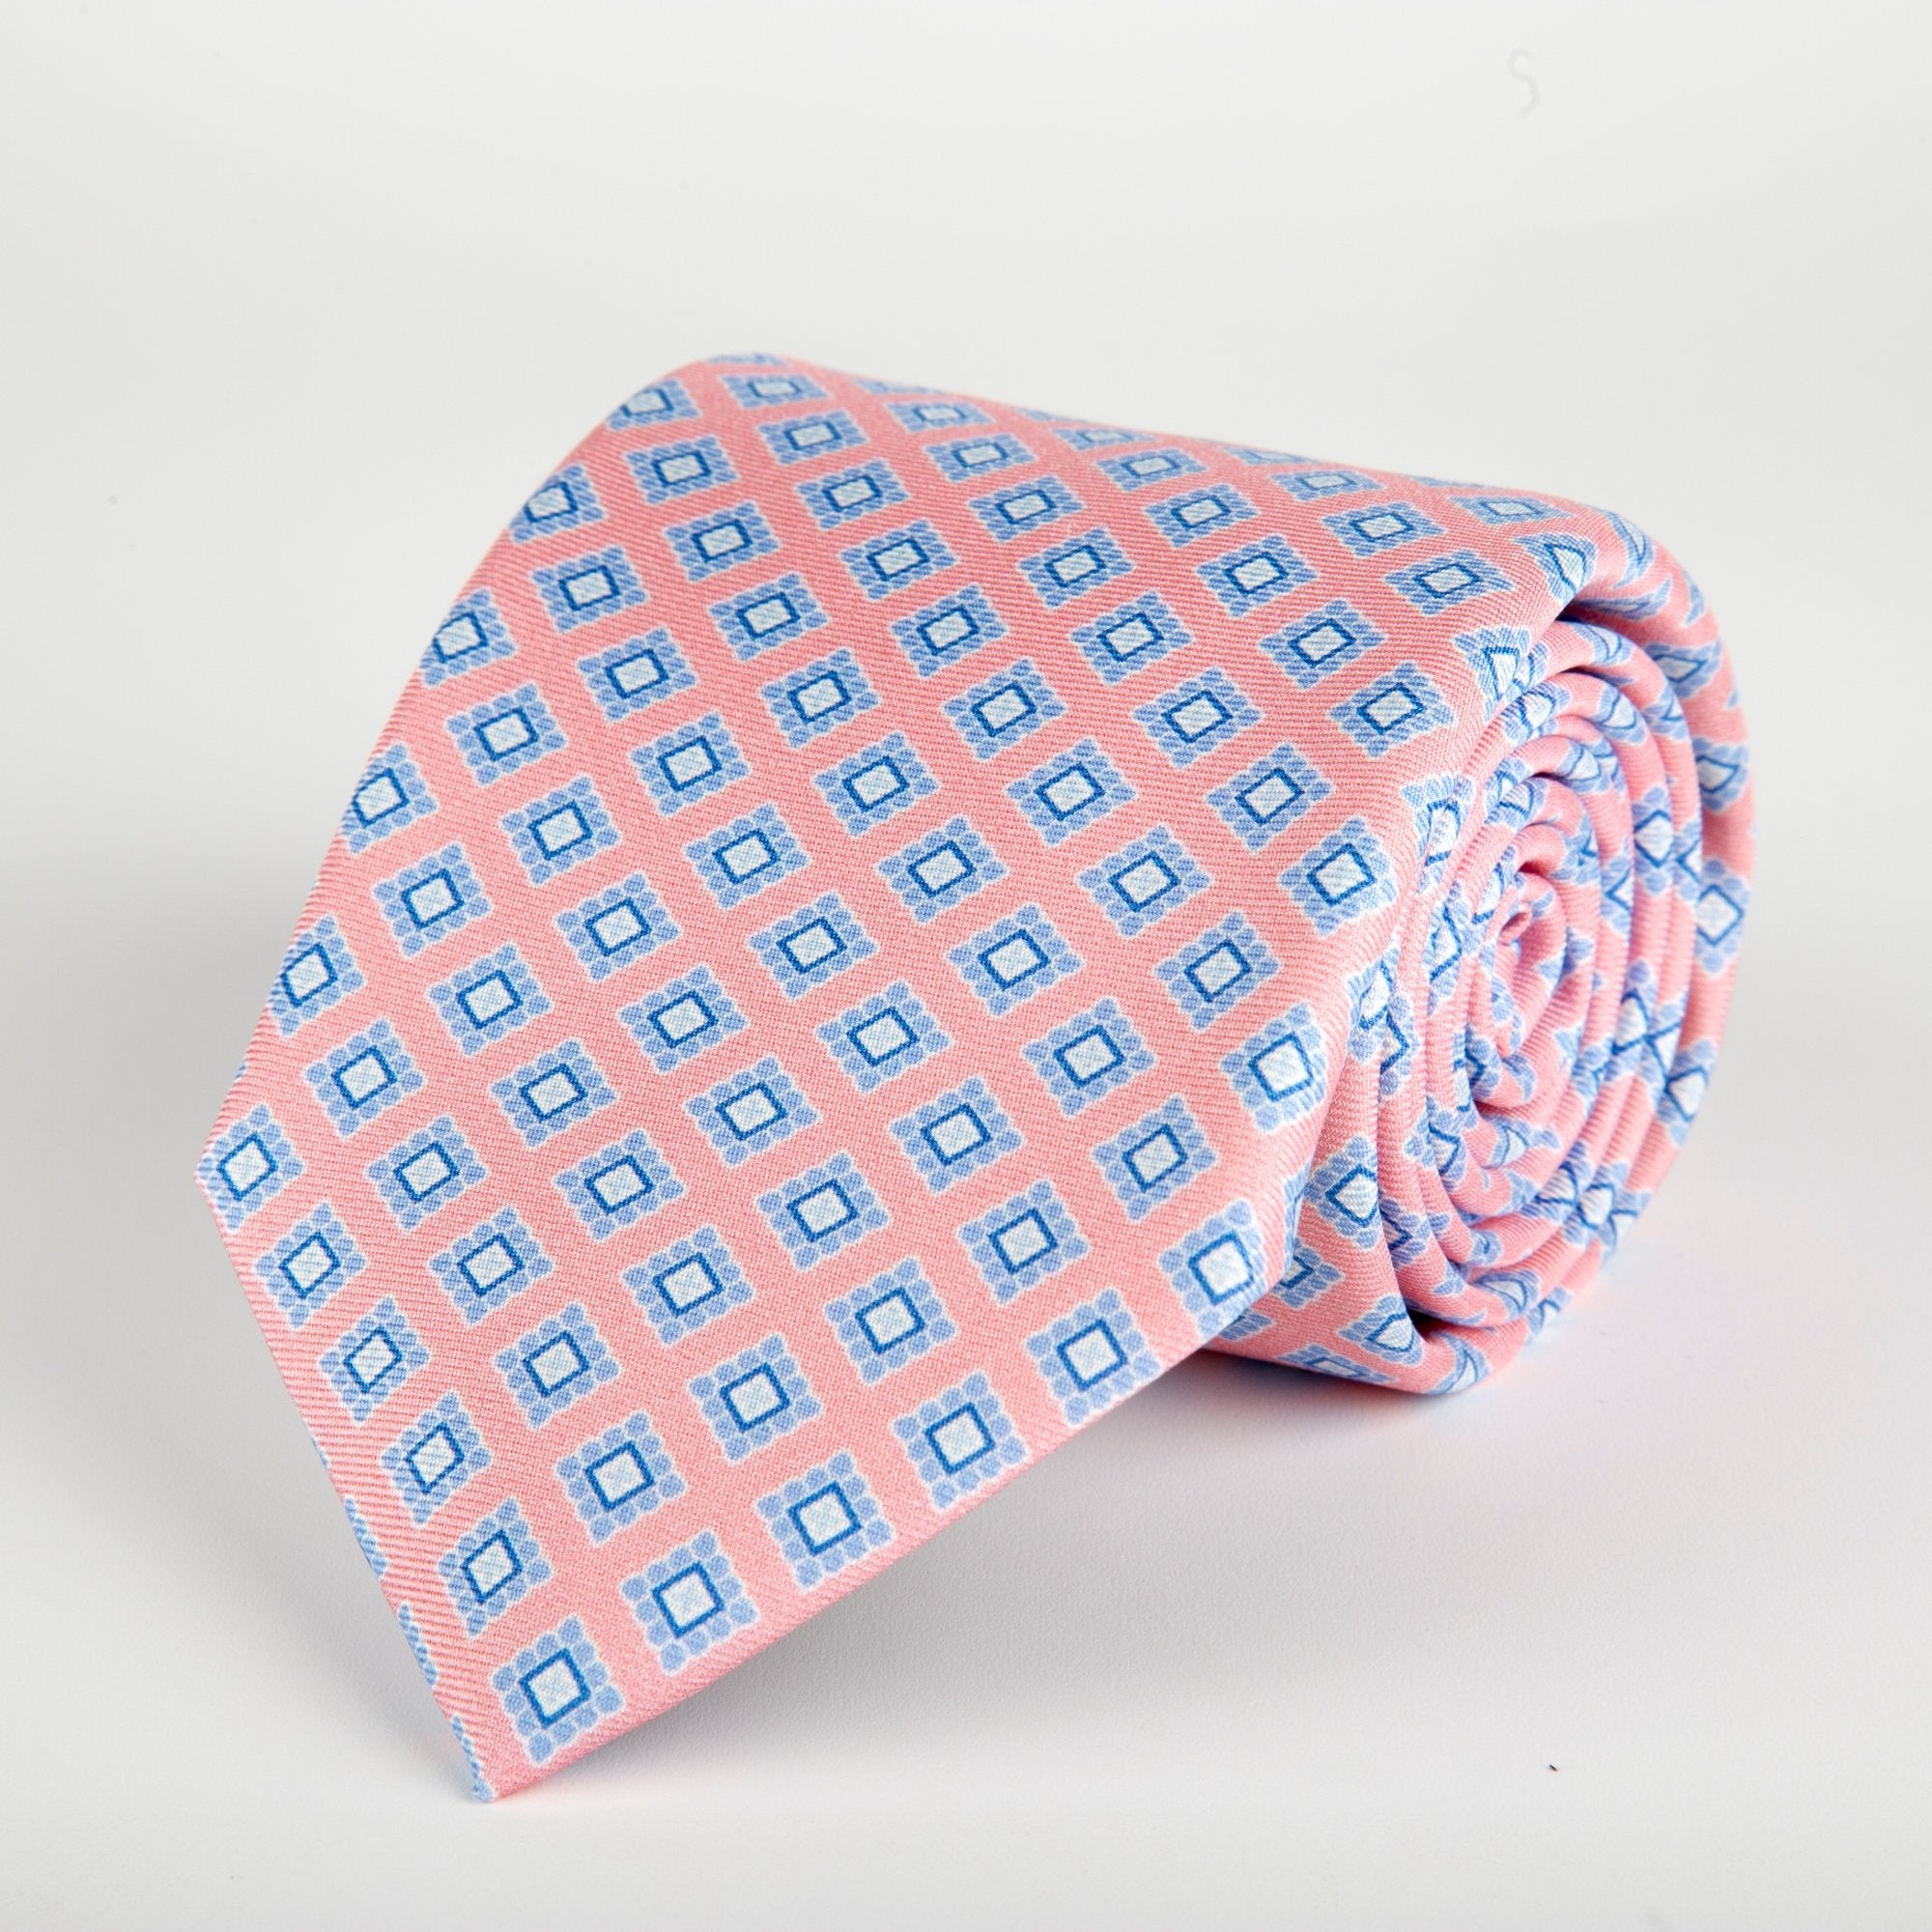 Pink Geometric Flower Block Printed Silk Tie - British Made